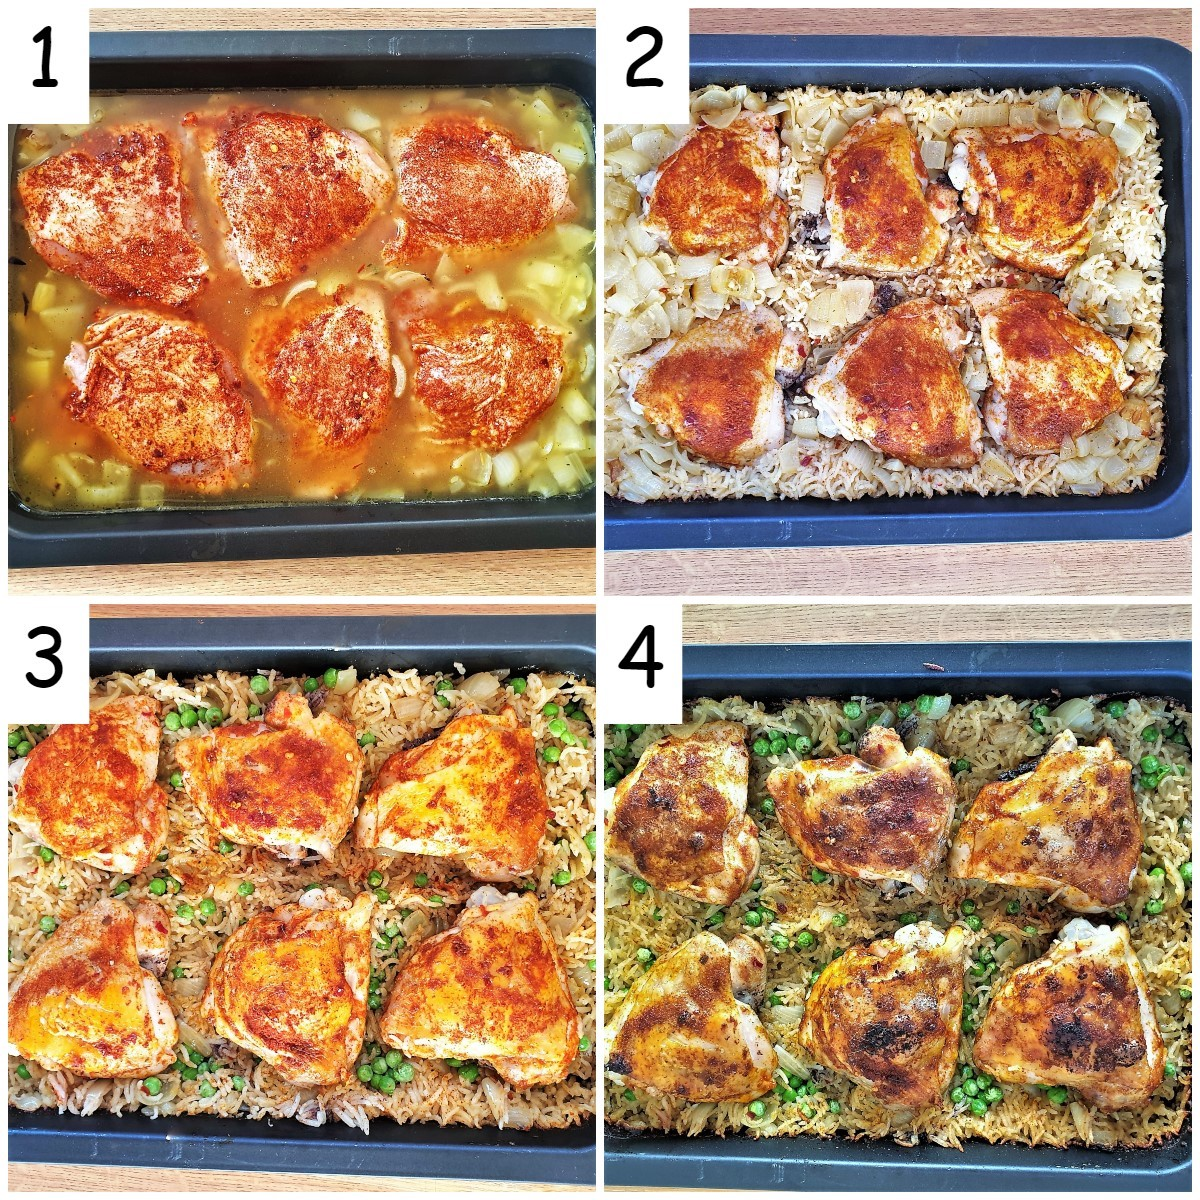 Four images showing the different stages of the chicken thighs being baked.